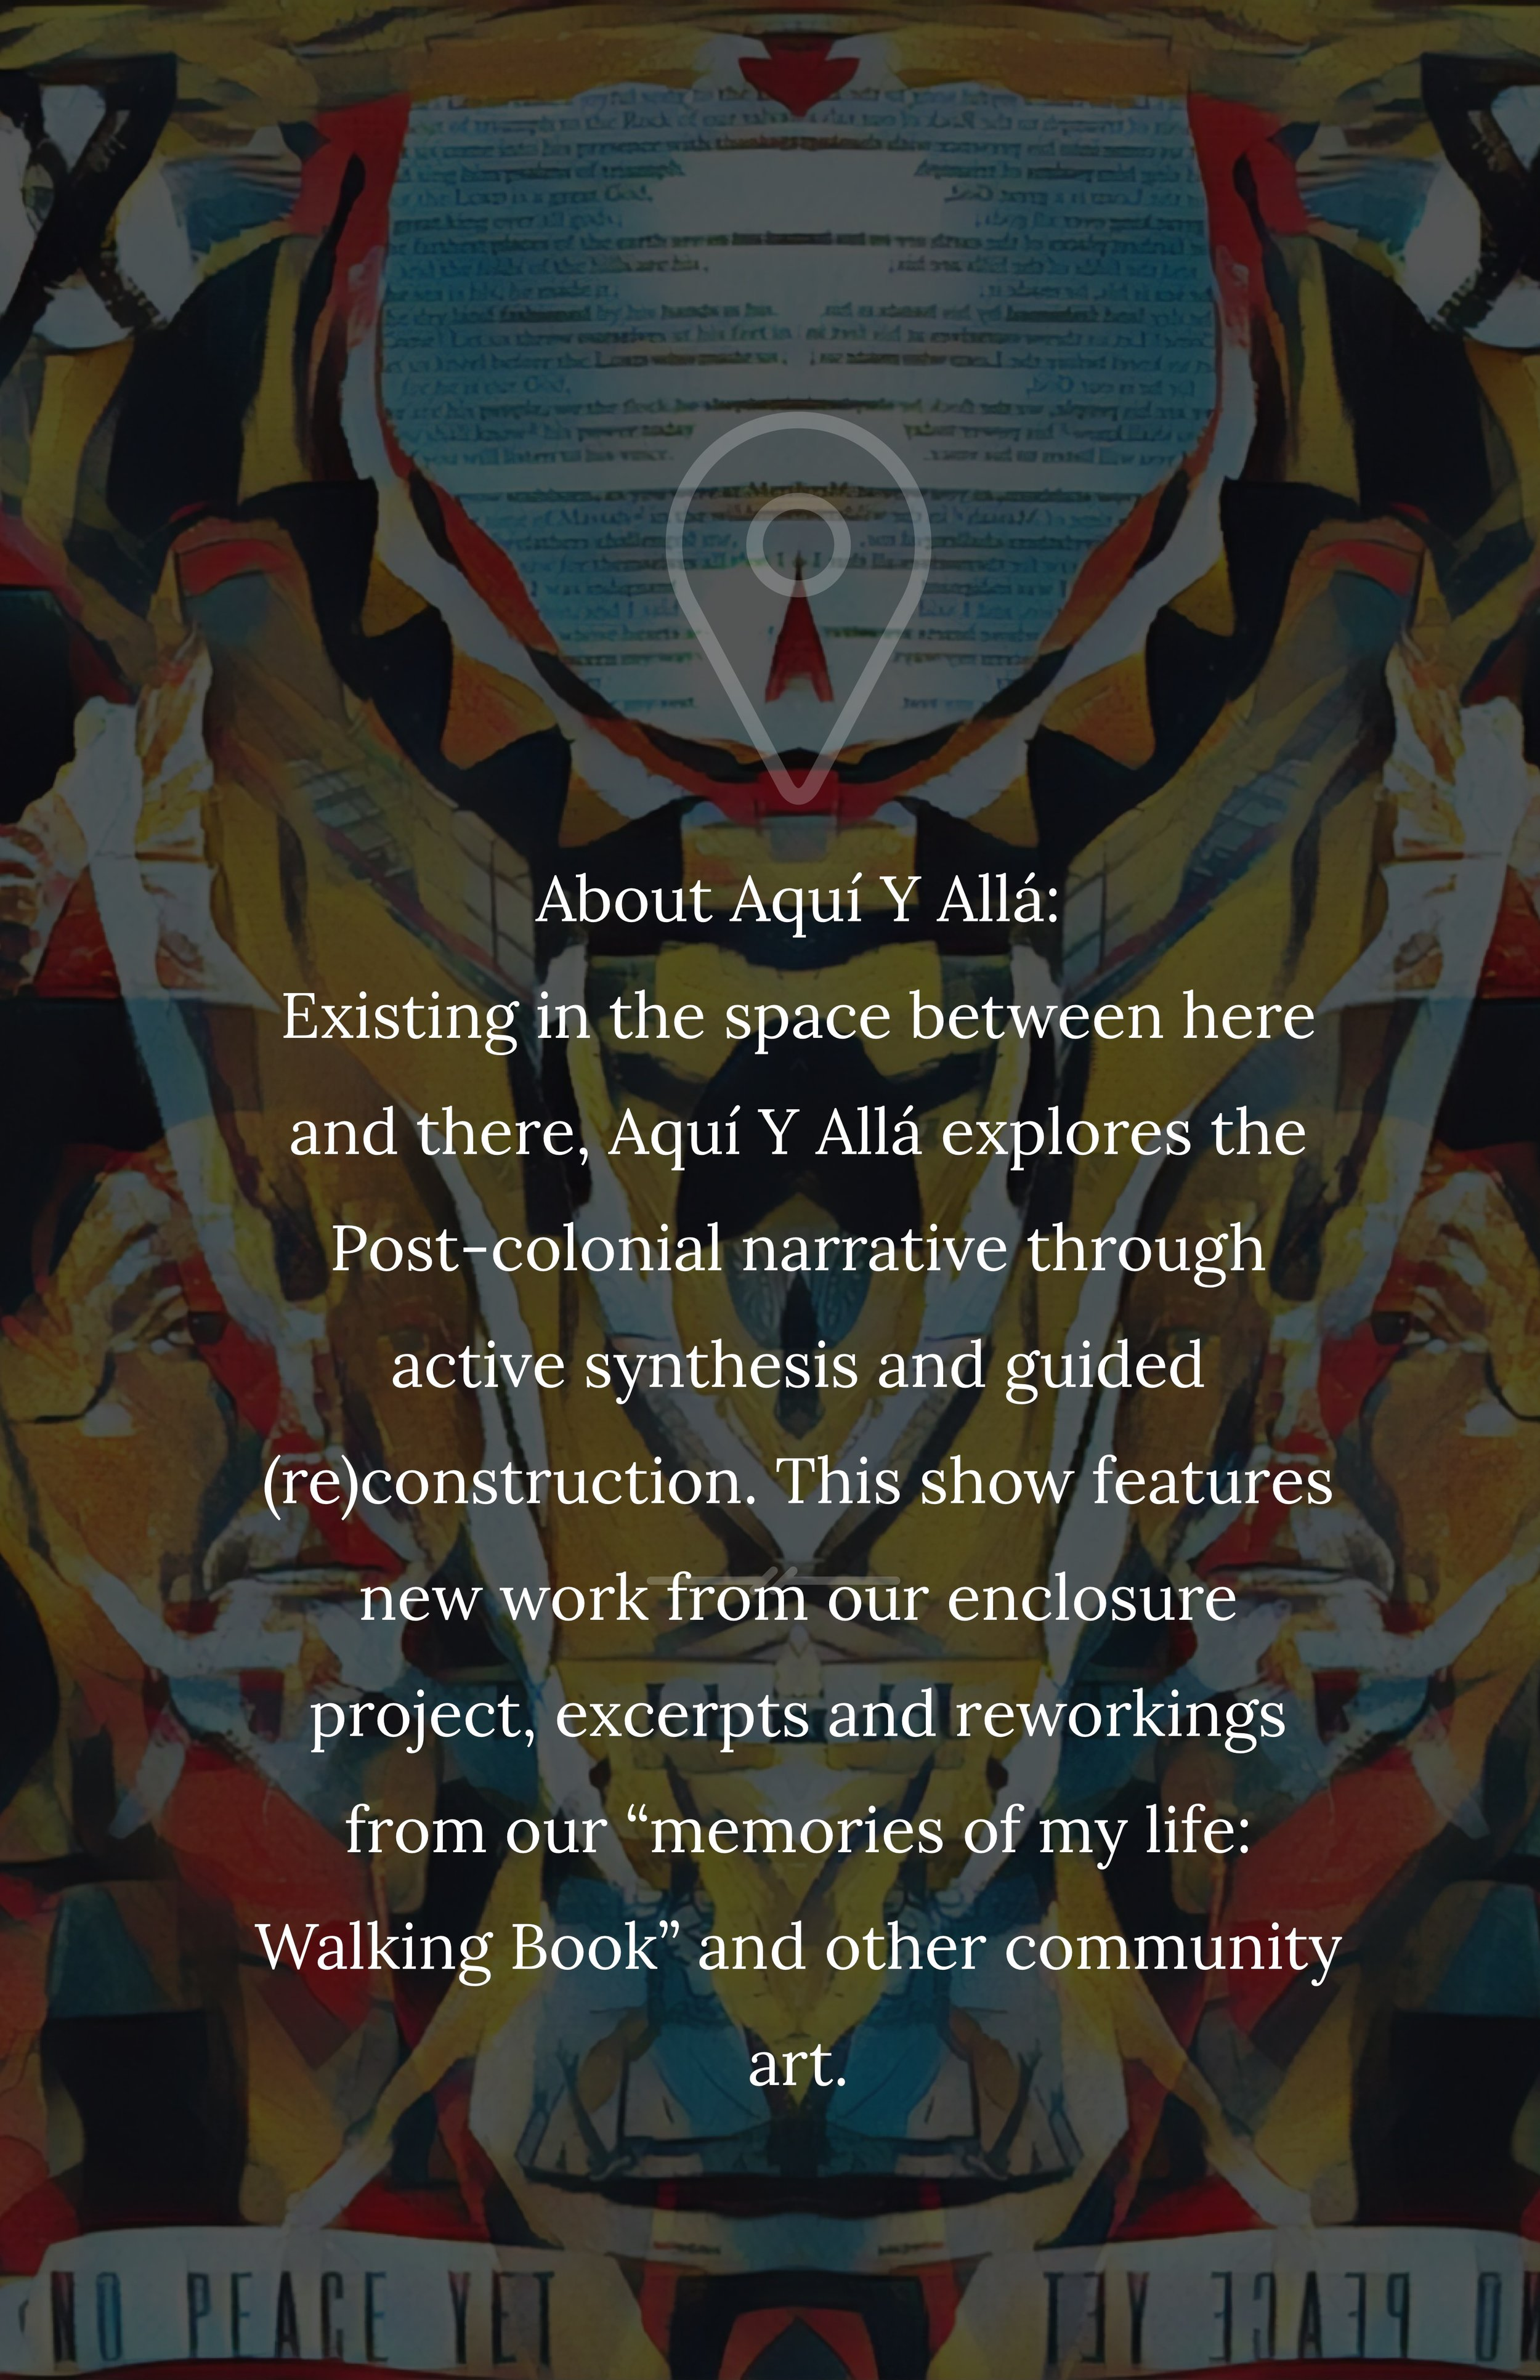 Aquí Y Allá - Easthampton City Arts MAP Gallery, Eastworks, 116 Pleasant St, Easthampton, MA 01027: April 13th – May 5th, 2019